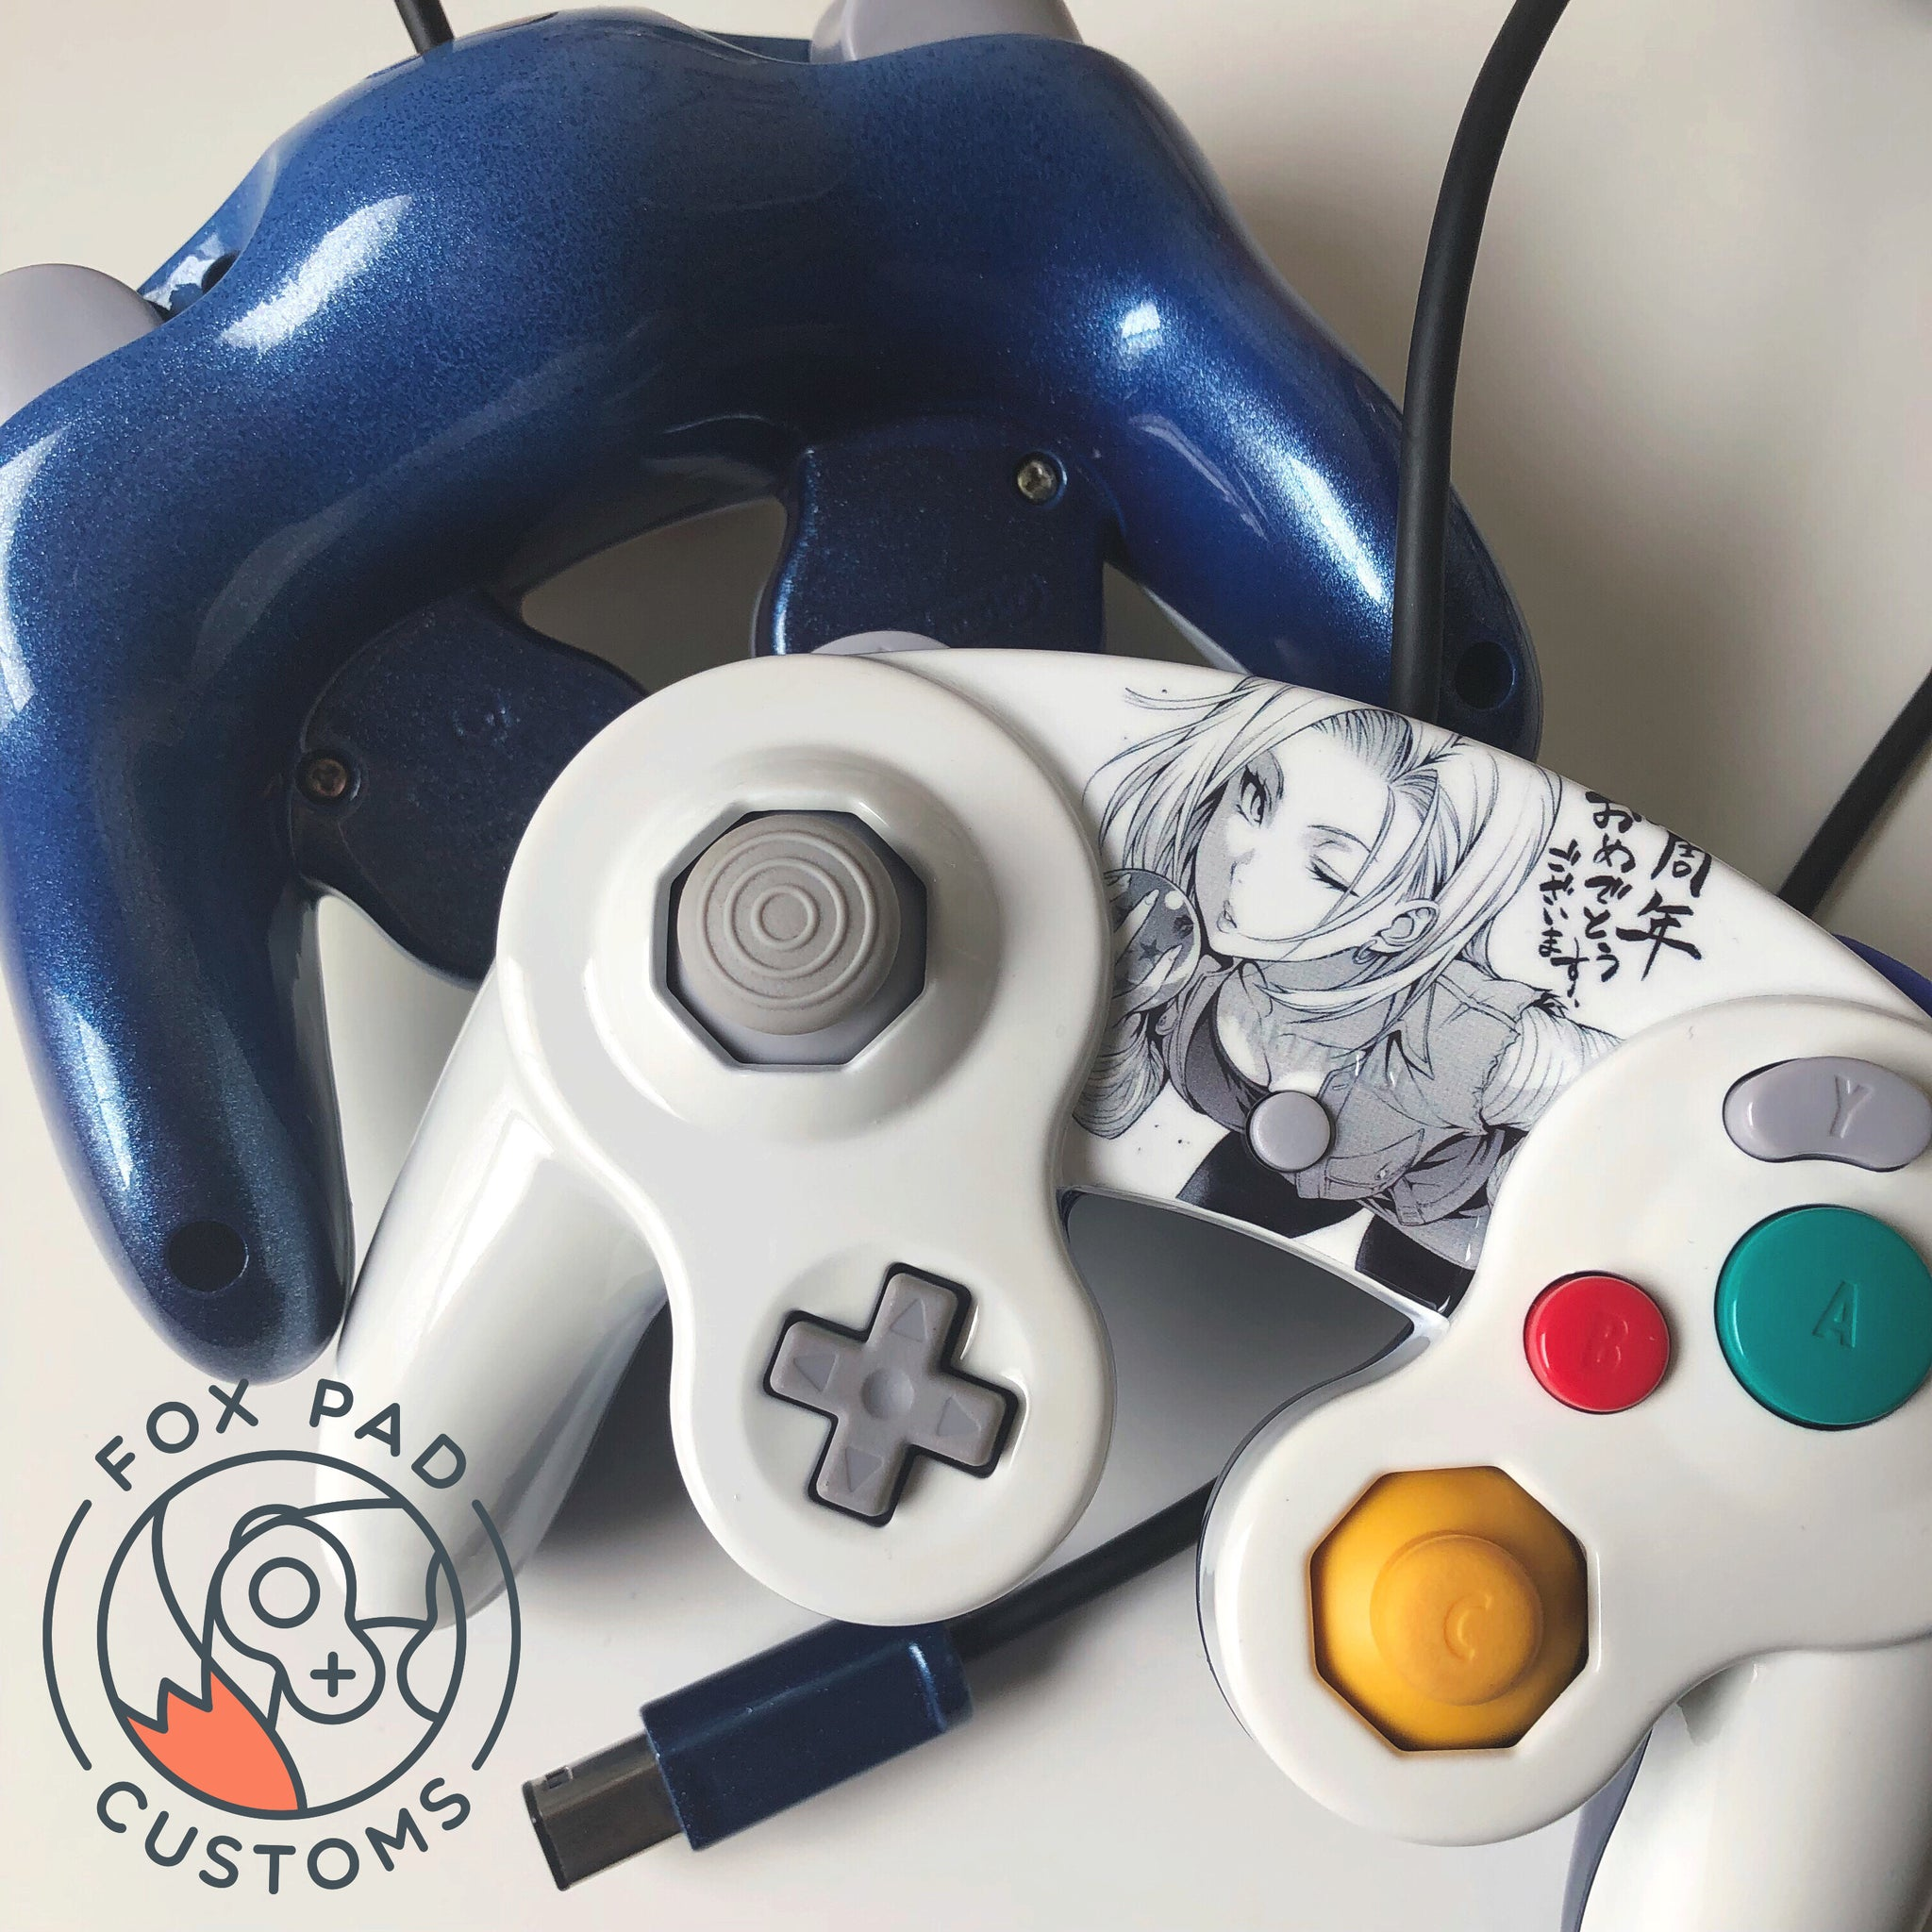 ANDROID18 CUSTOM CONTROLLER – foxpad customs